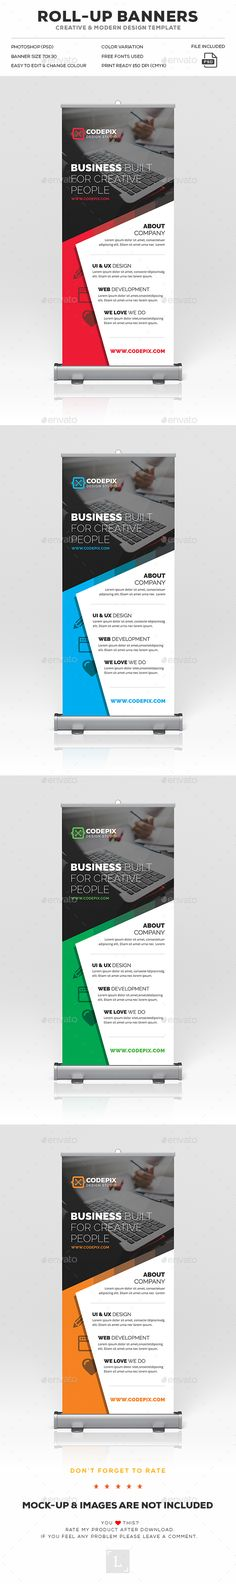 Creative Roll-Up Banner Template PSD